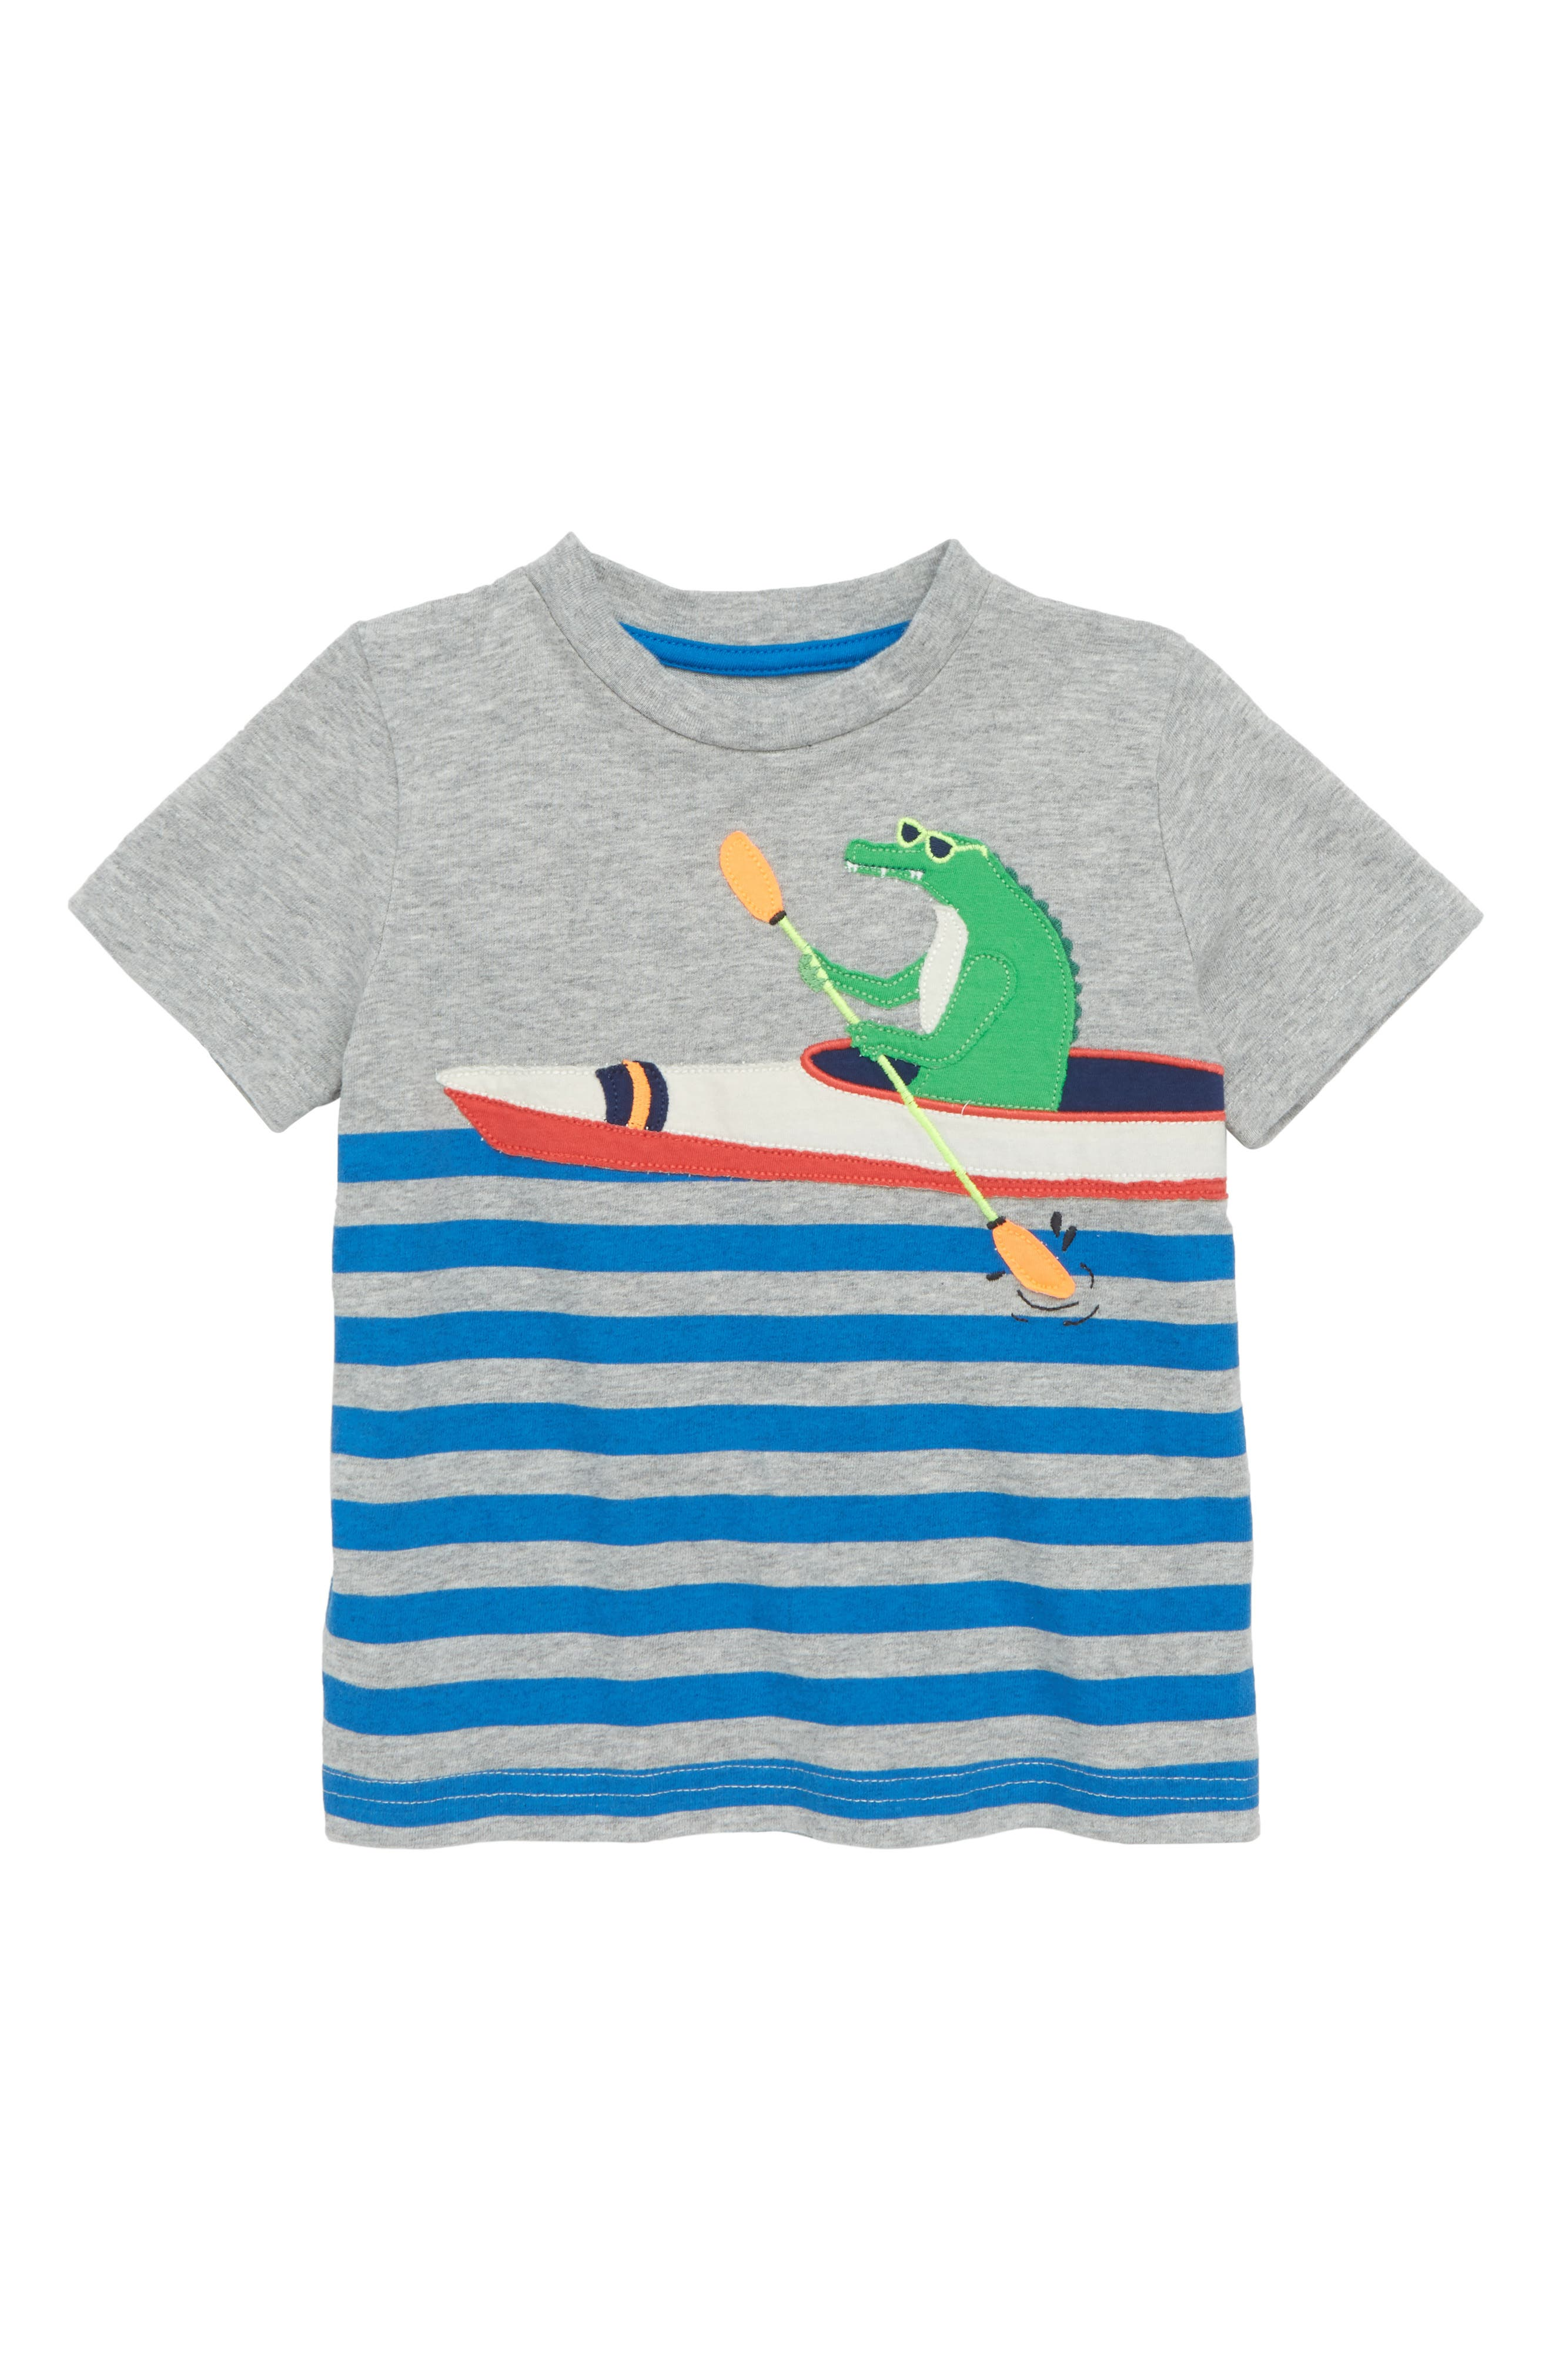 Paddling Pal Appliqué T-Shirt,                             Main thumbnail 1, color,                             034